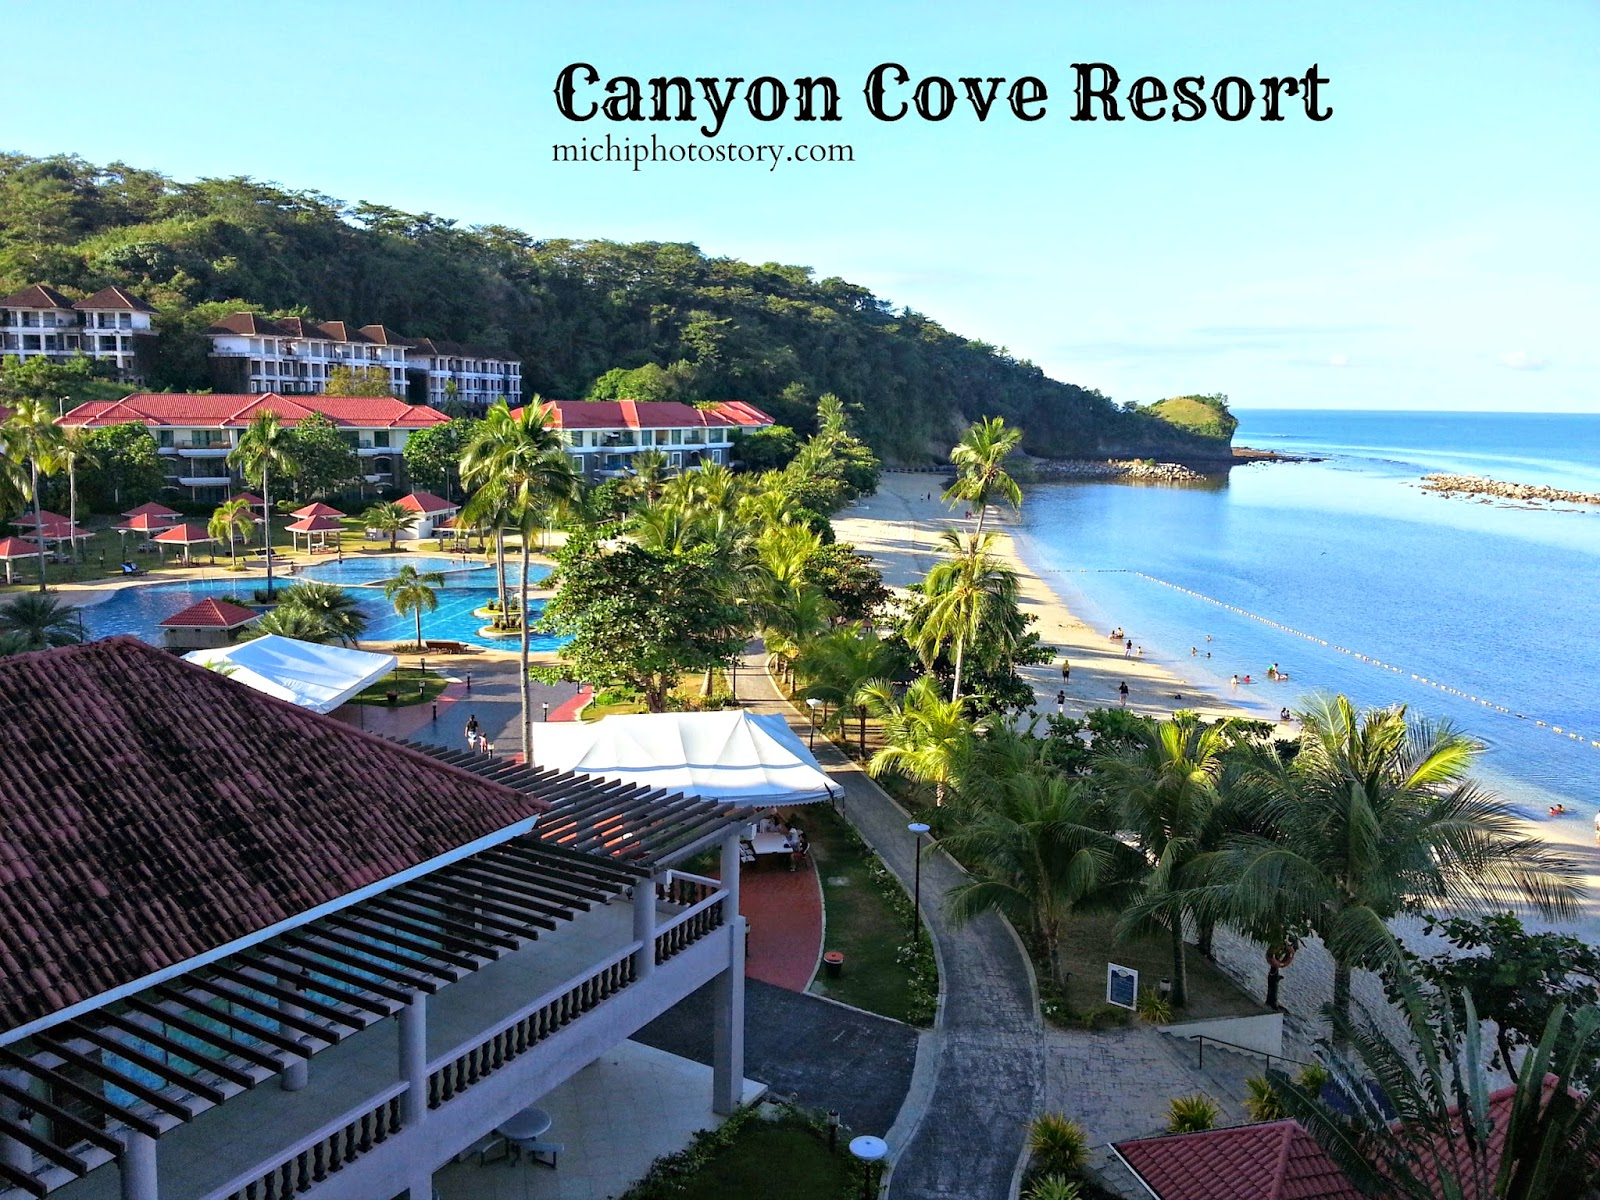 Michi photostory staycation canyon cove for Batangas beach and swimming pool resort